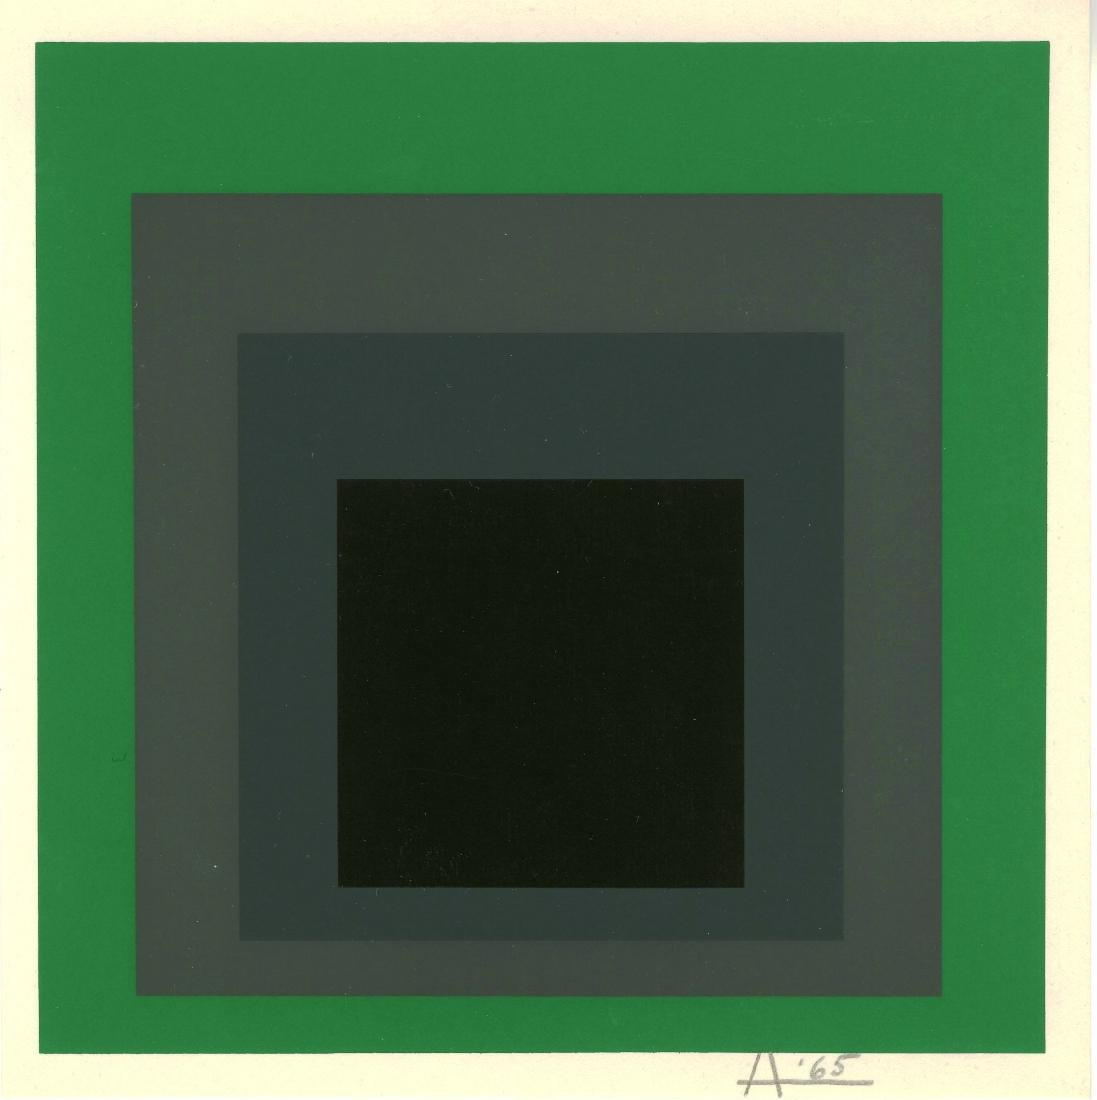 368: JOSEF ALBERS - Homage to the Square: Grisaille and